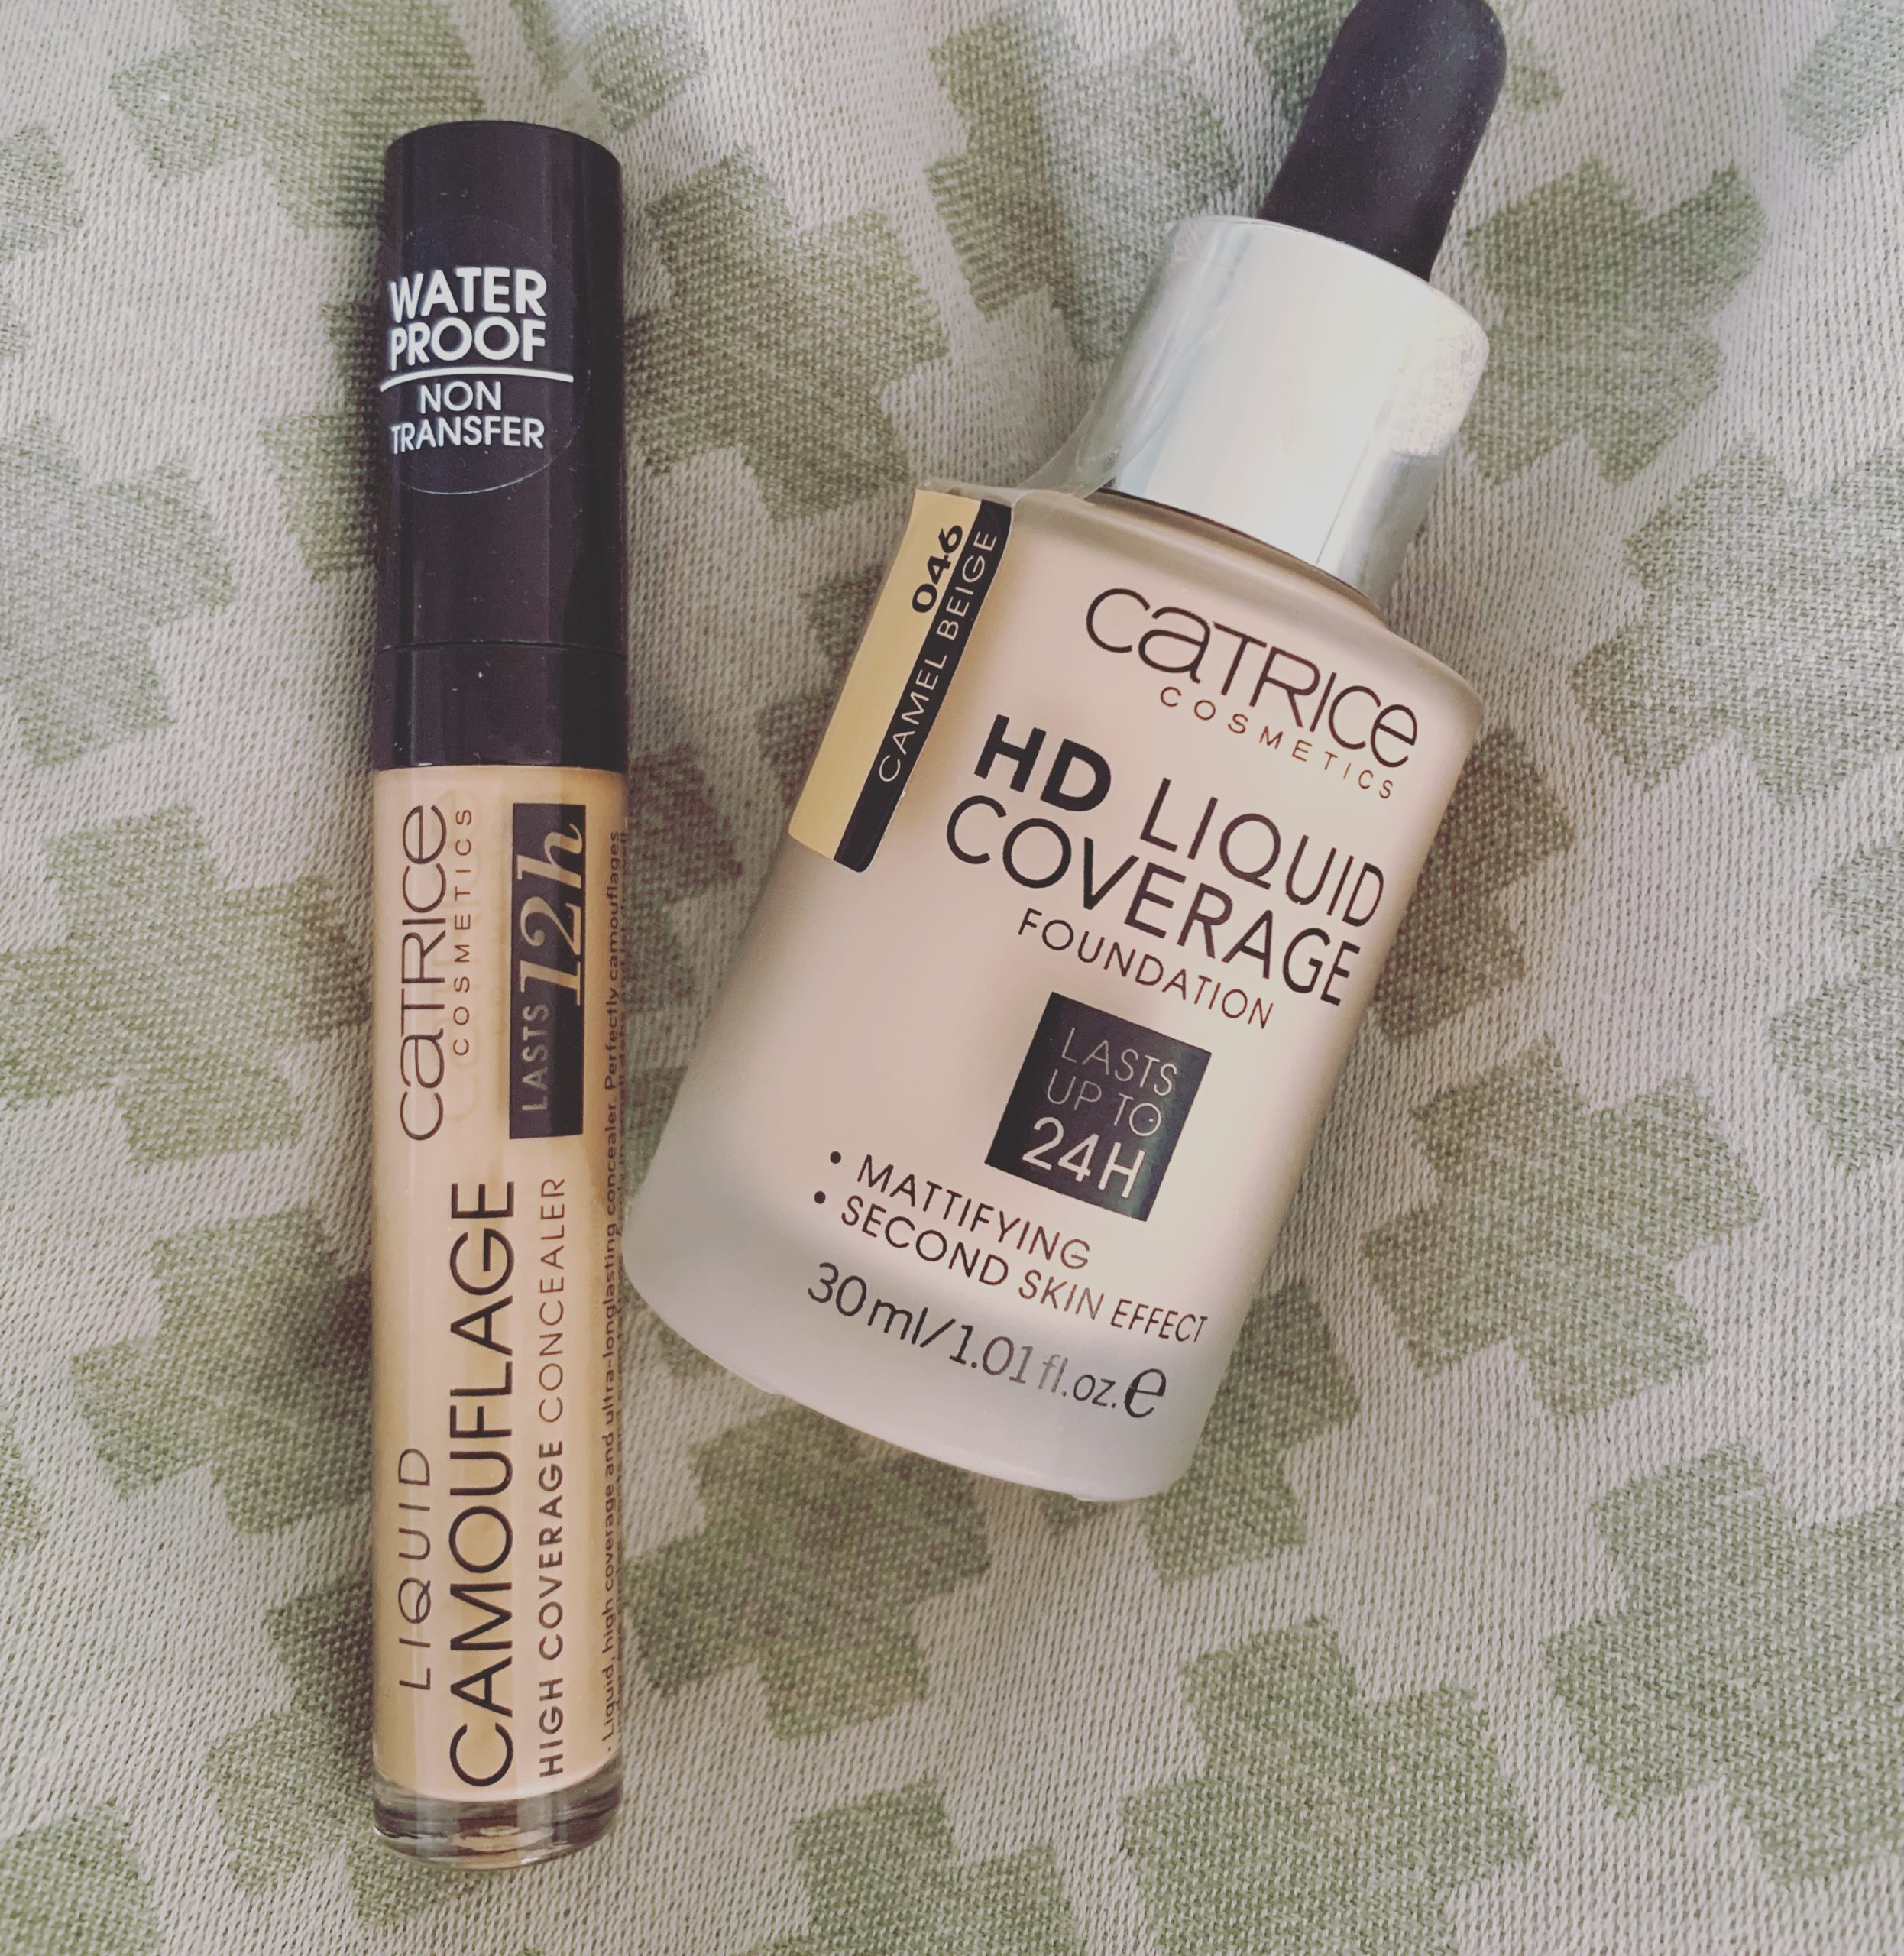 Catrice Cosmetics Hd Liquid Coverage Foundation Review Canadian Beauty